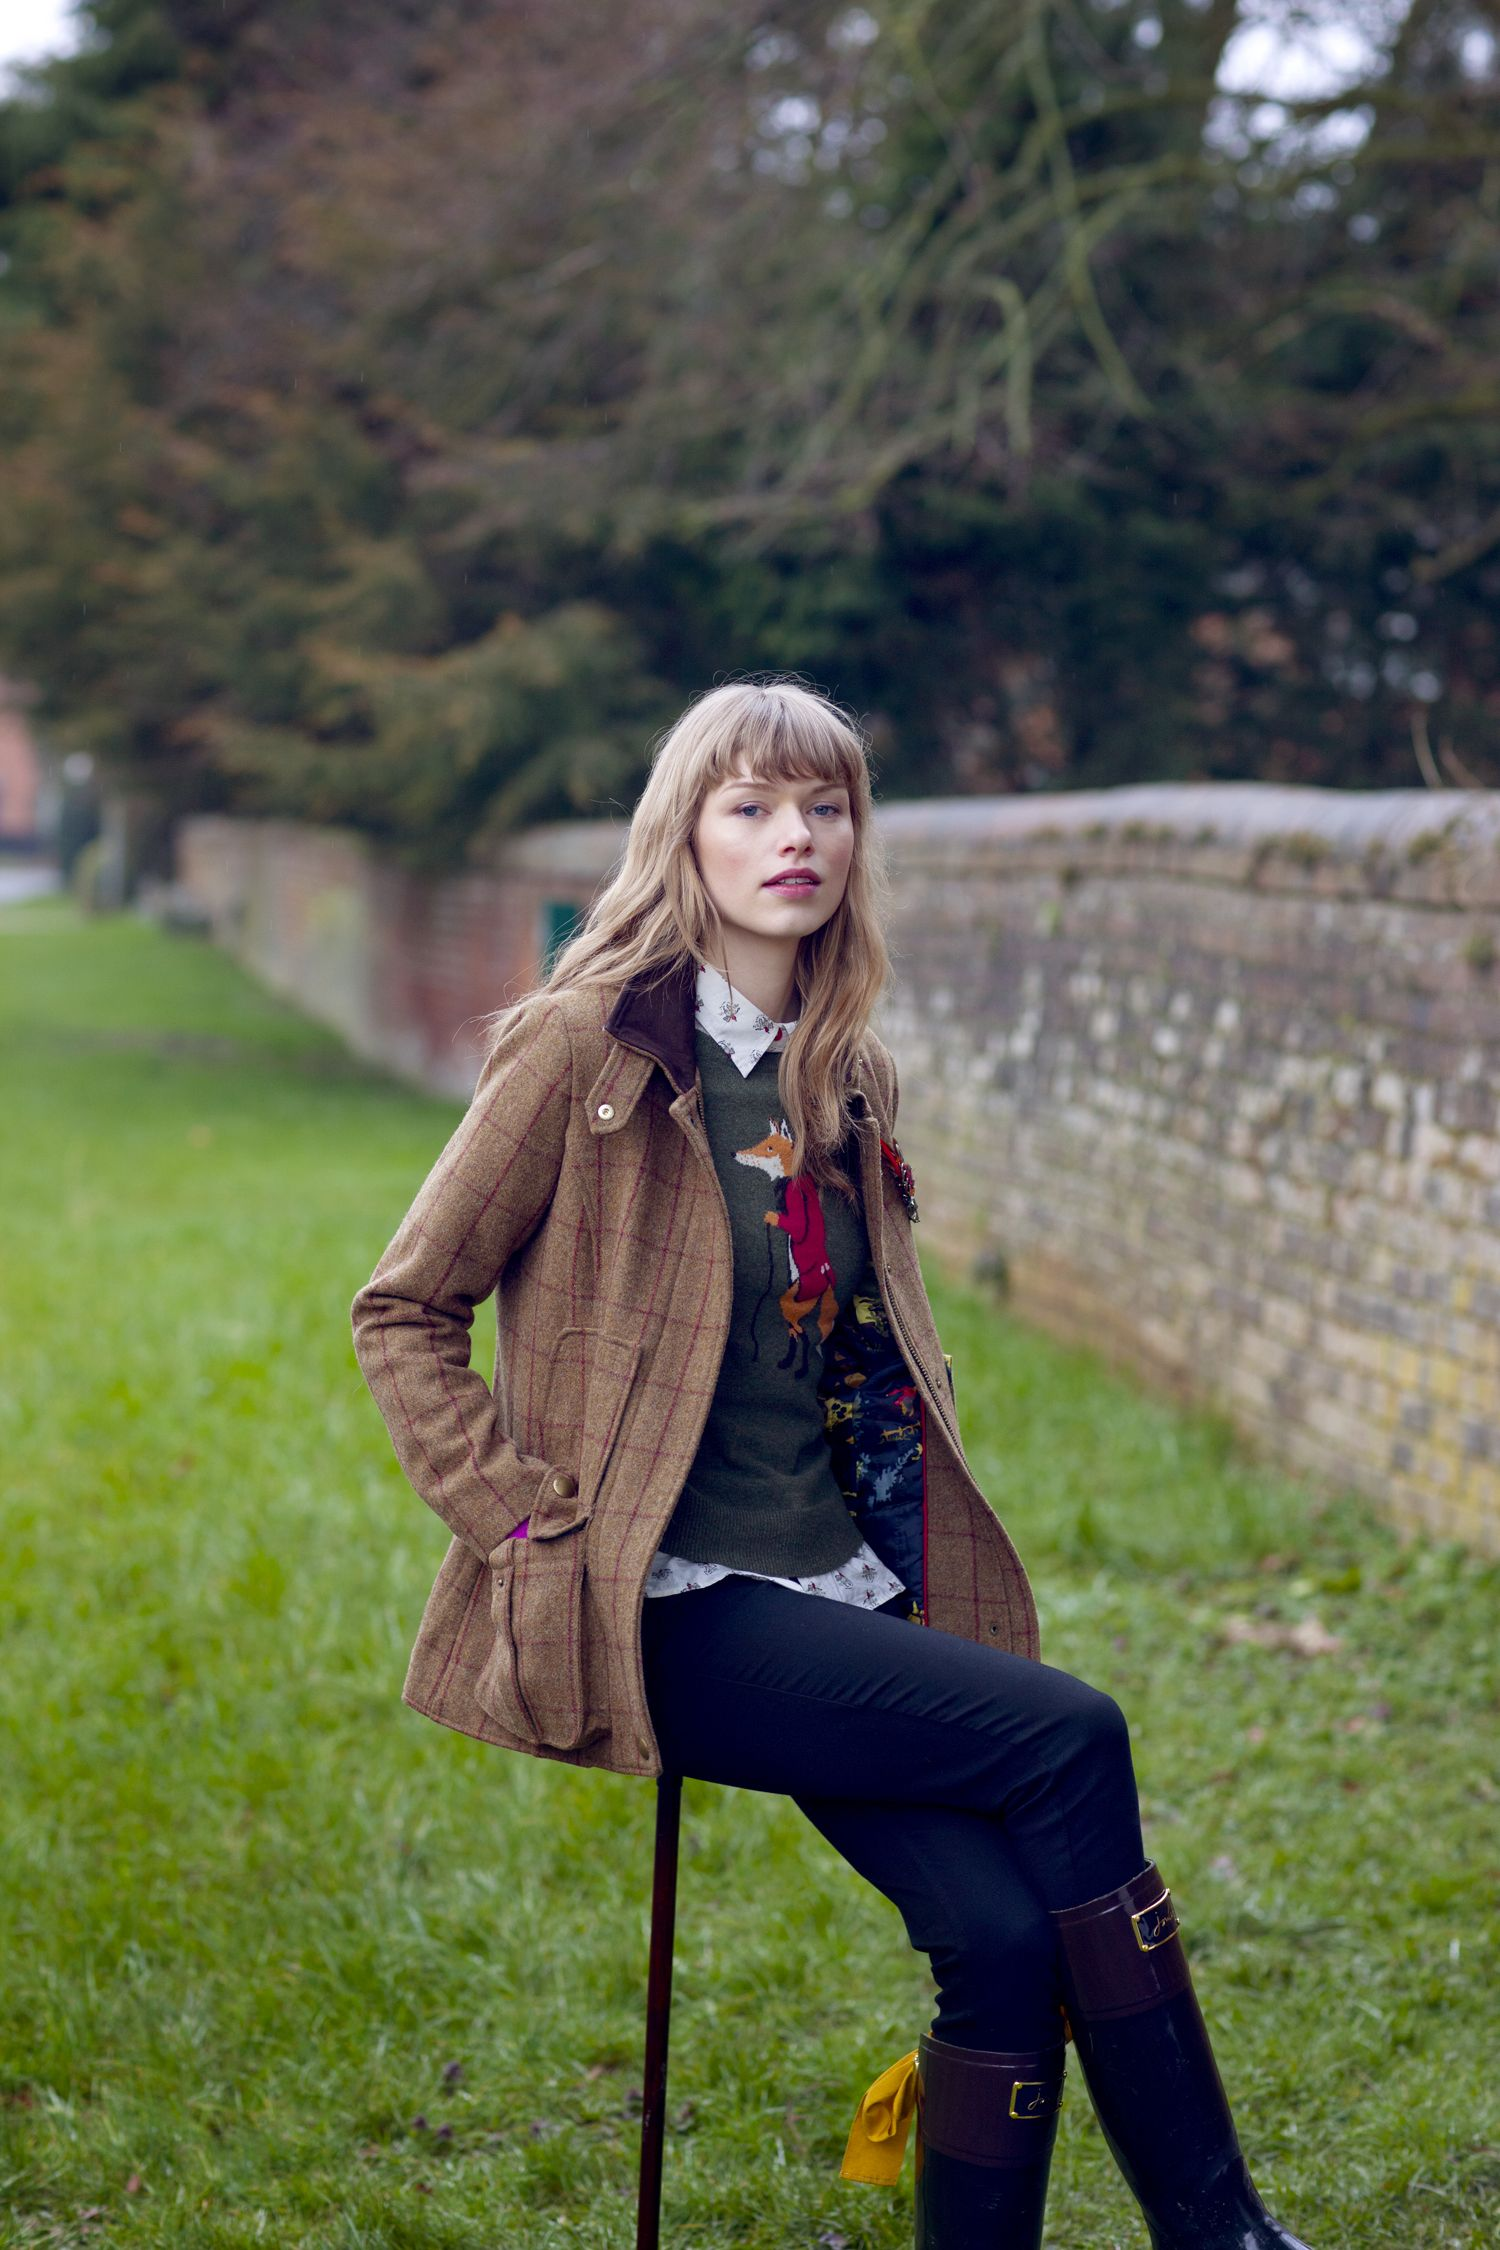 Joules At Country House Outdoor Country Fashion Country Attire Fashion